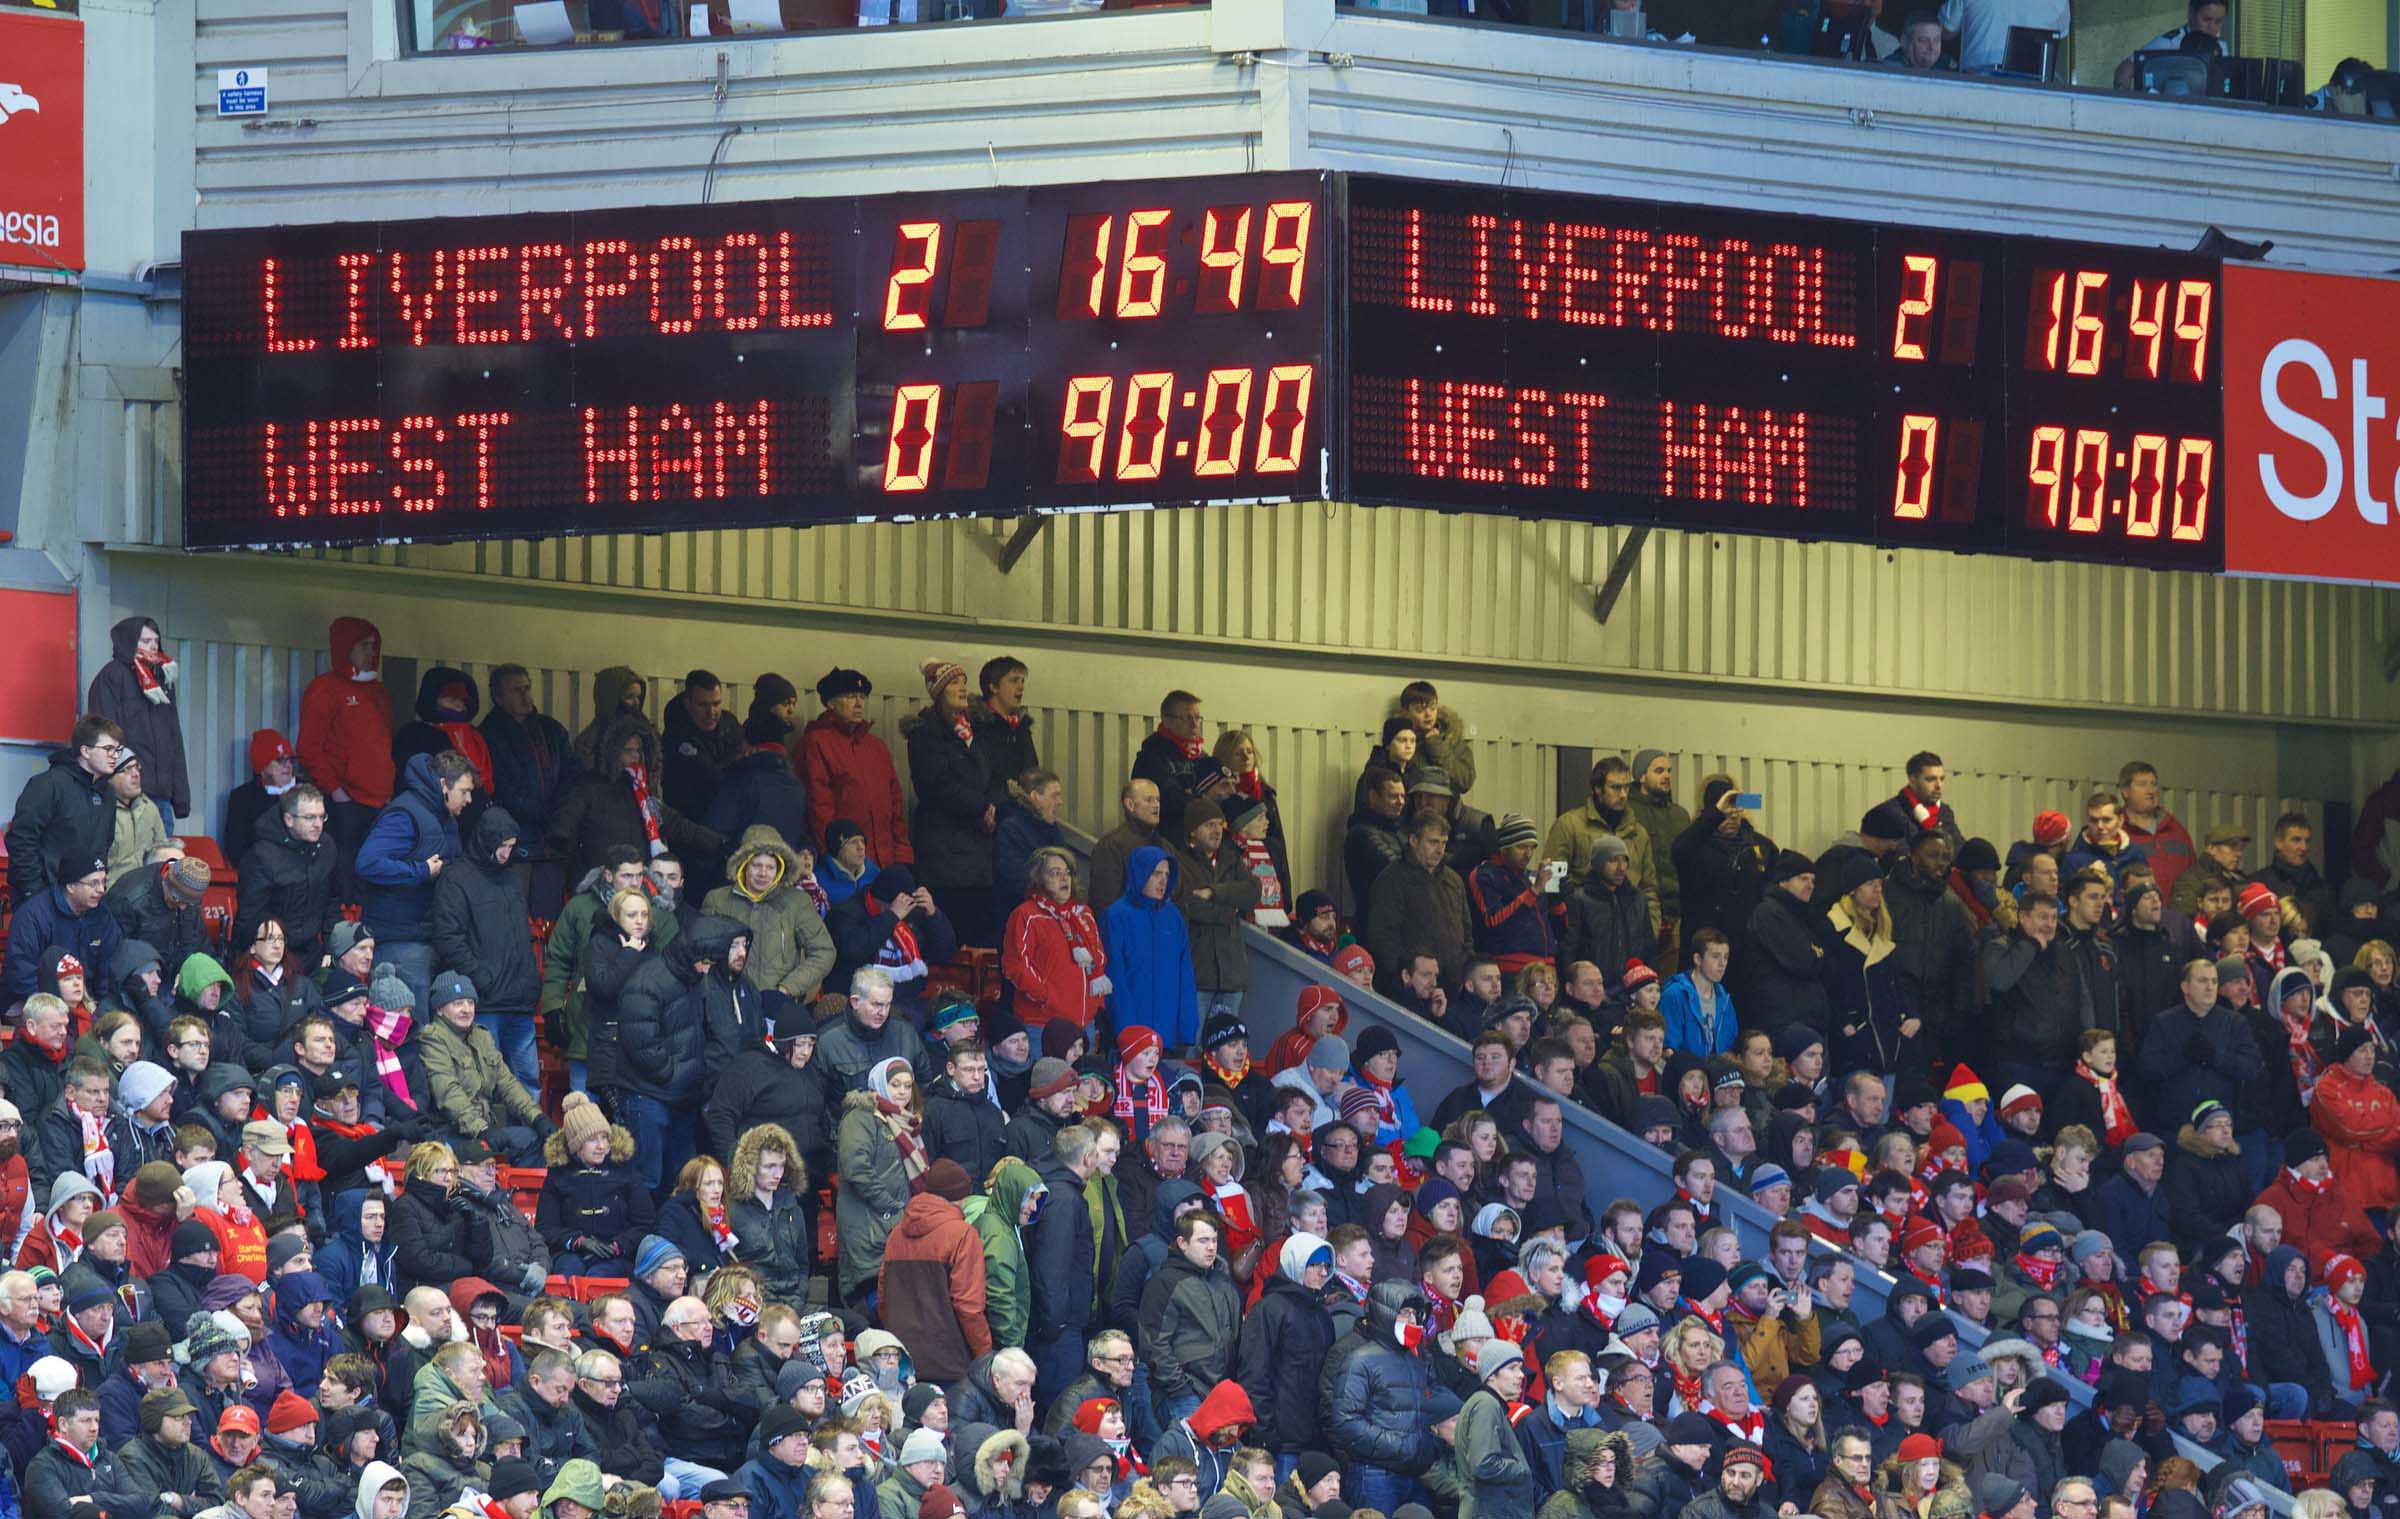 Football - FA Premier League - Liverpool FC v West Ham United FC